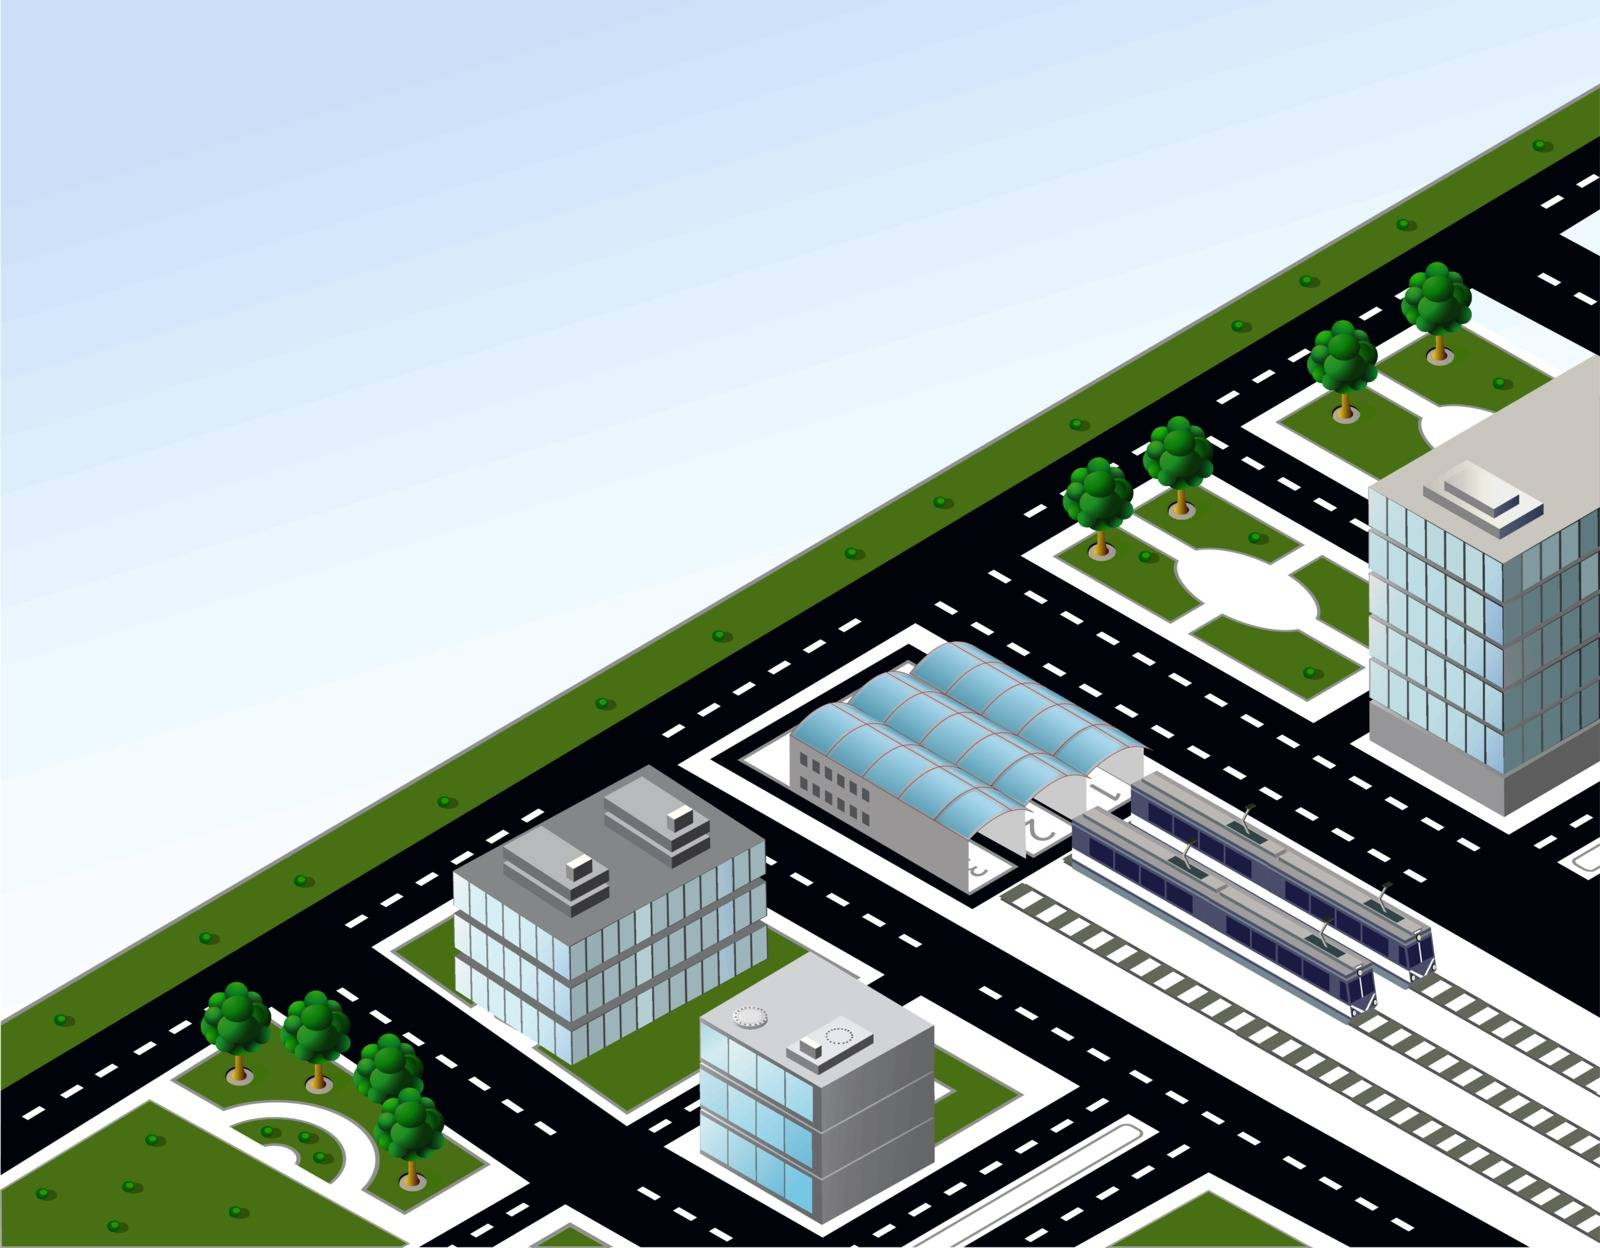 The isometric model of the transport on the background of sky